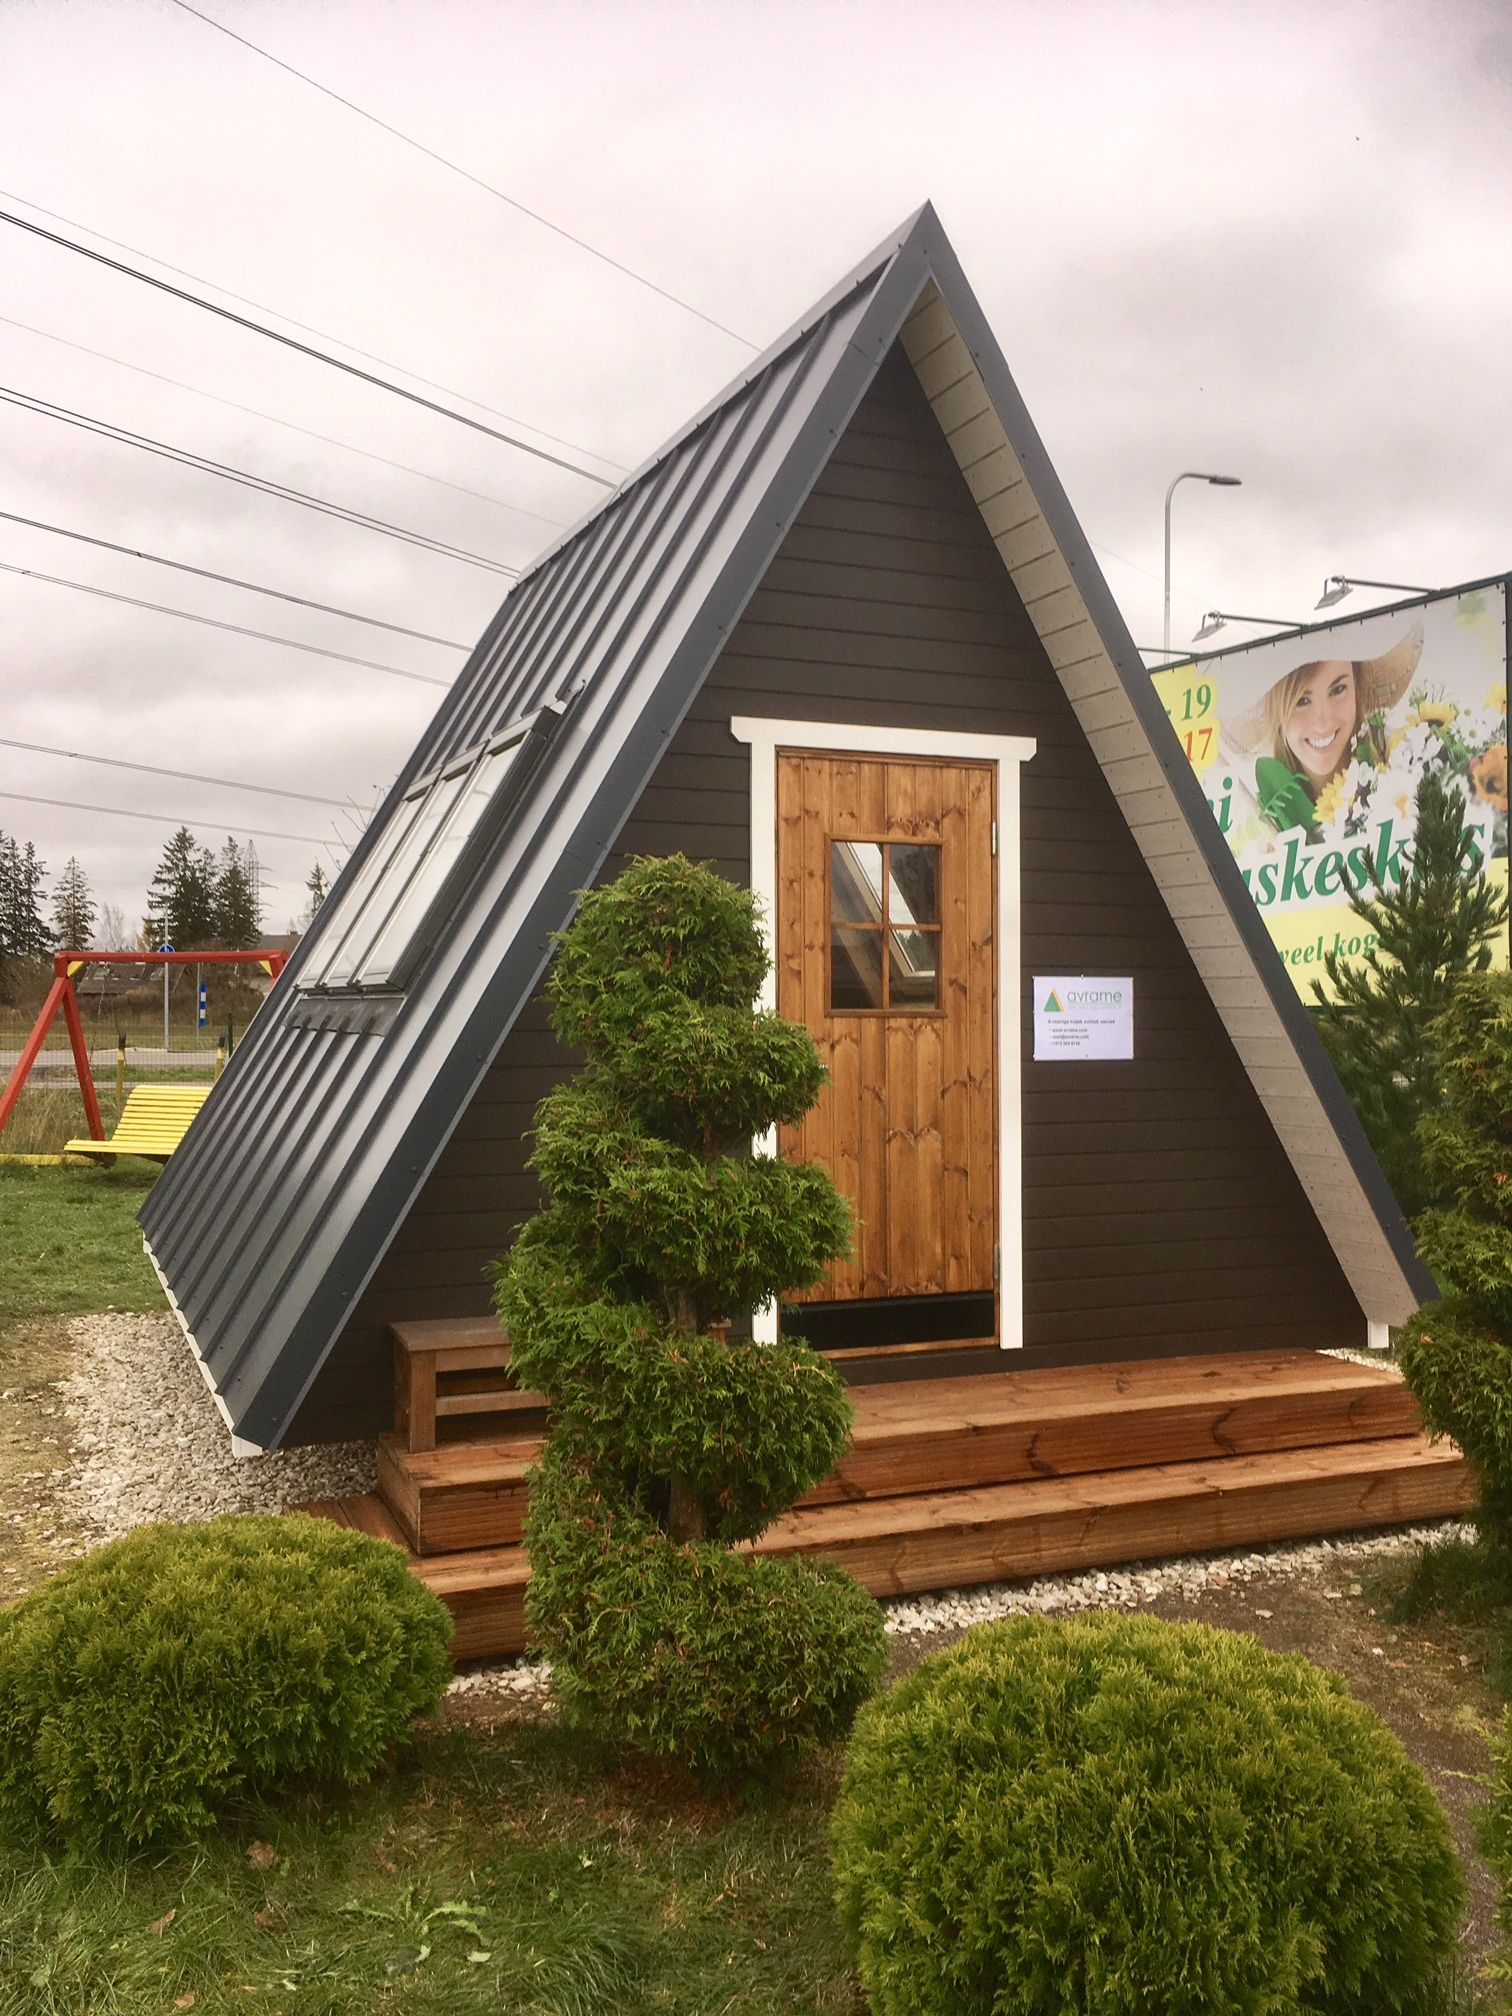 Affordable Housing With -frame Kit Homes In